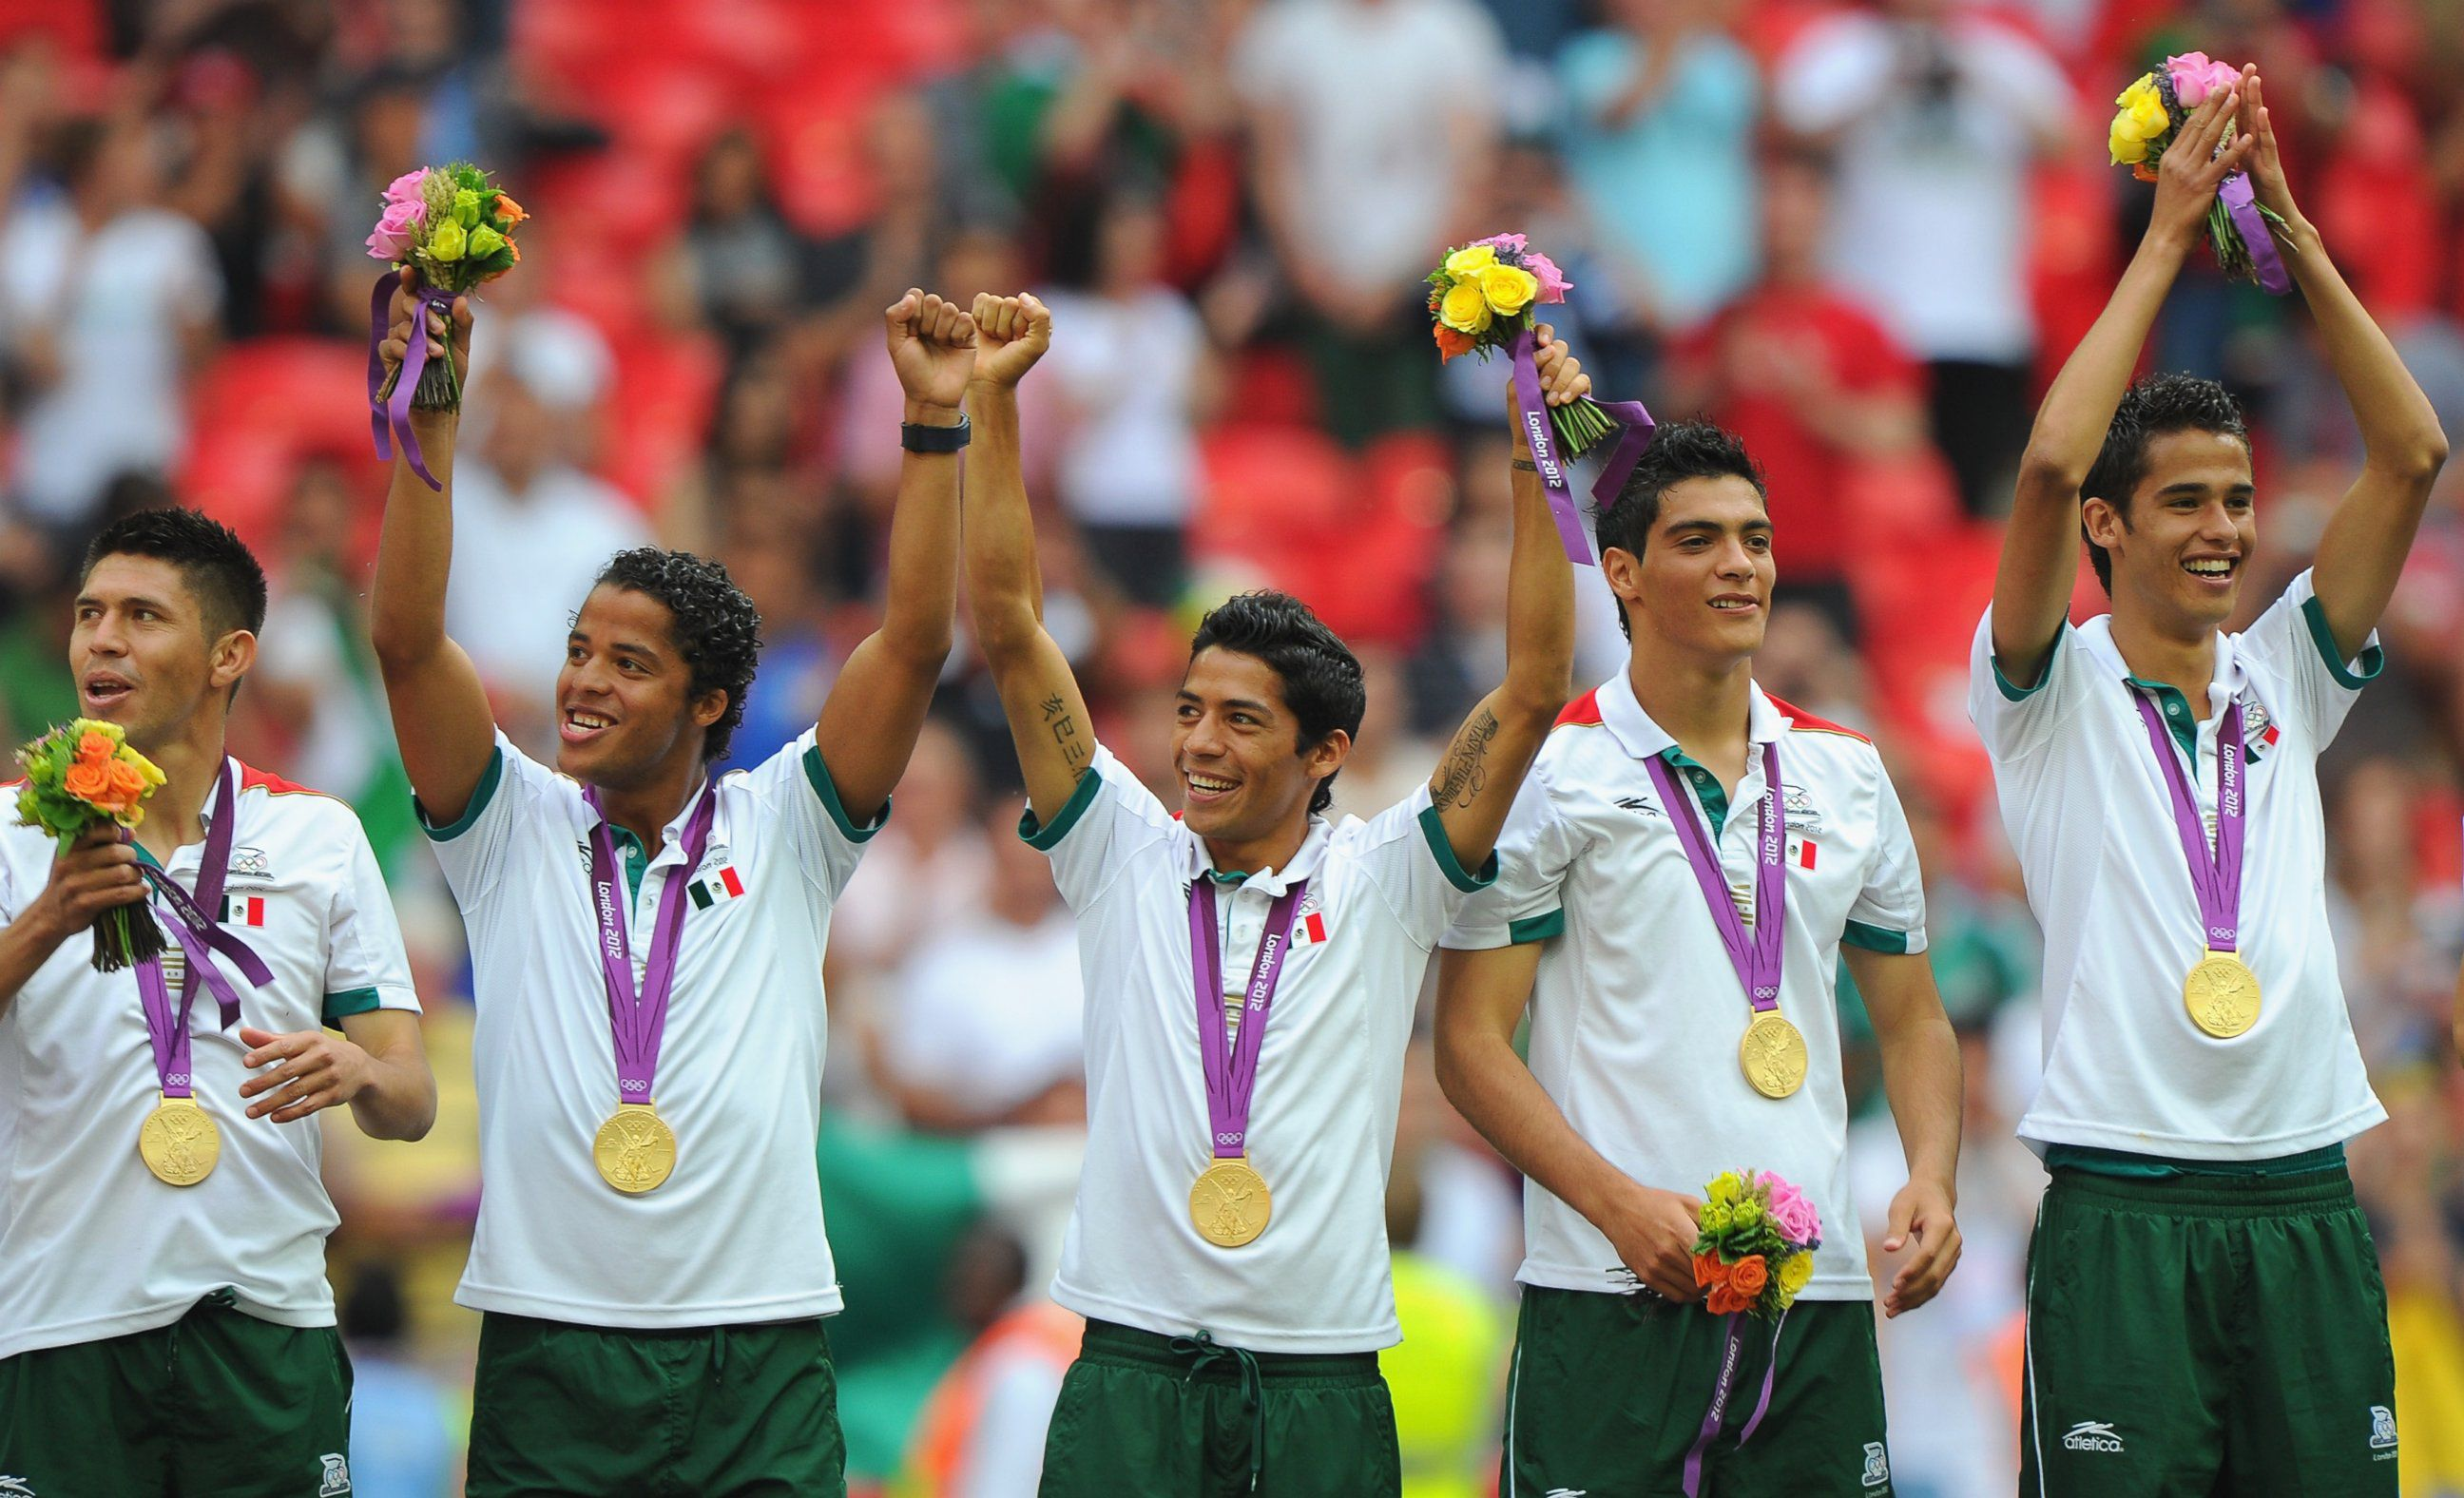 Rio 2016: Mexico sends off Olympic athletes, hails China's ...